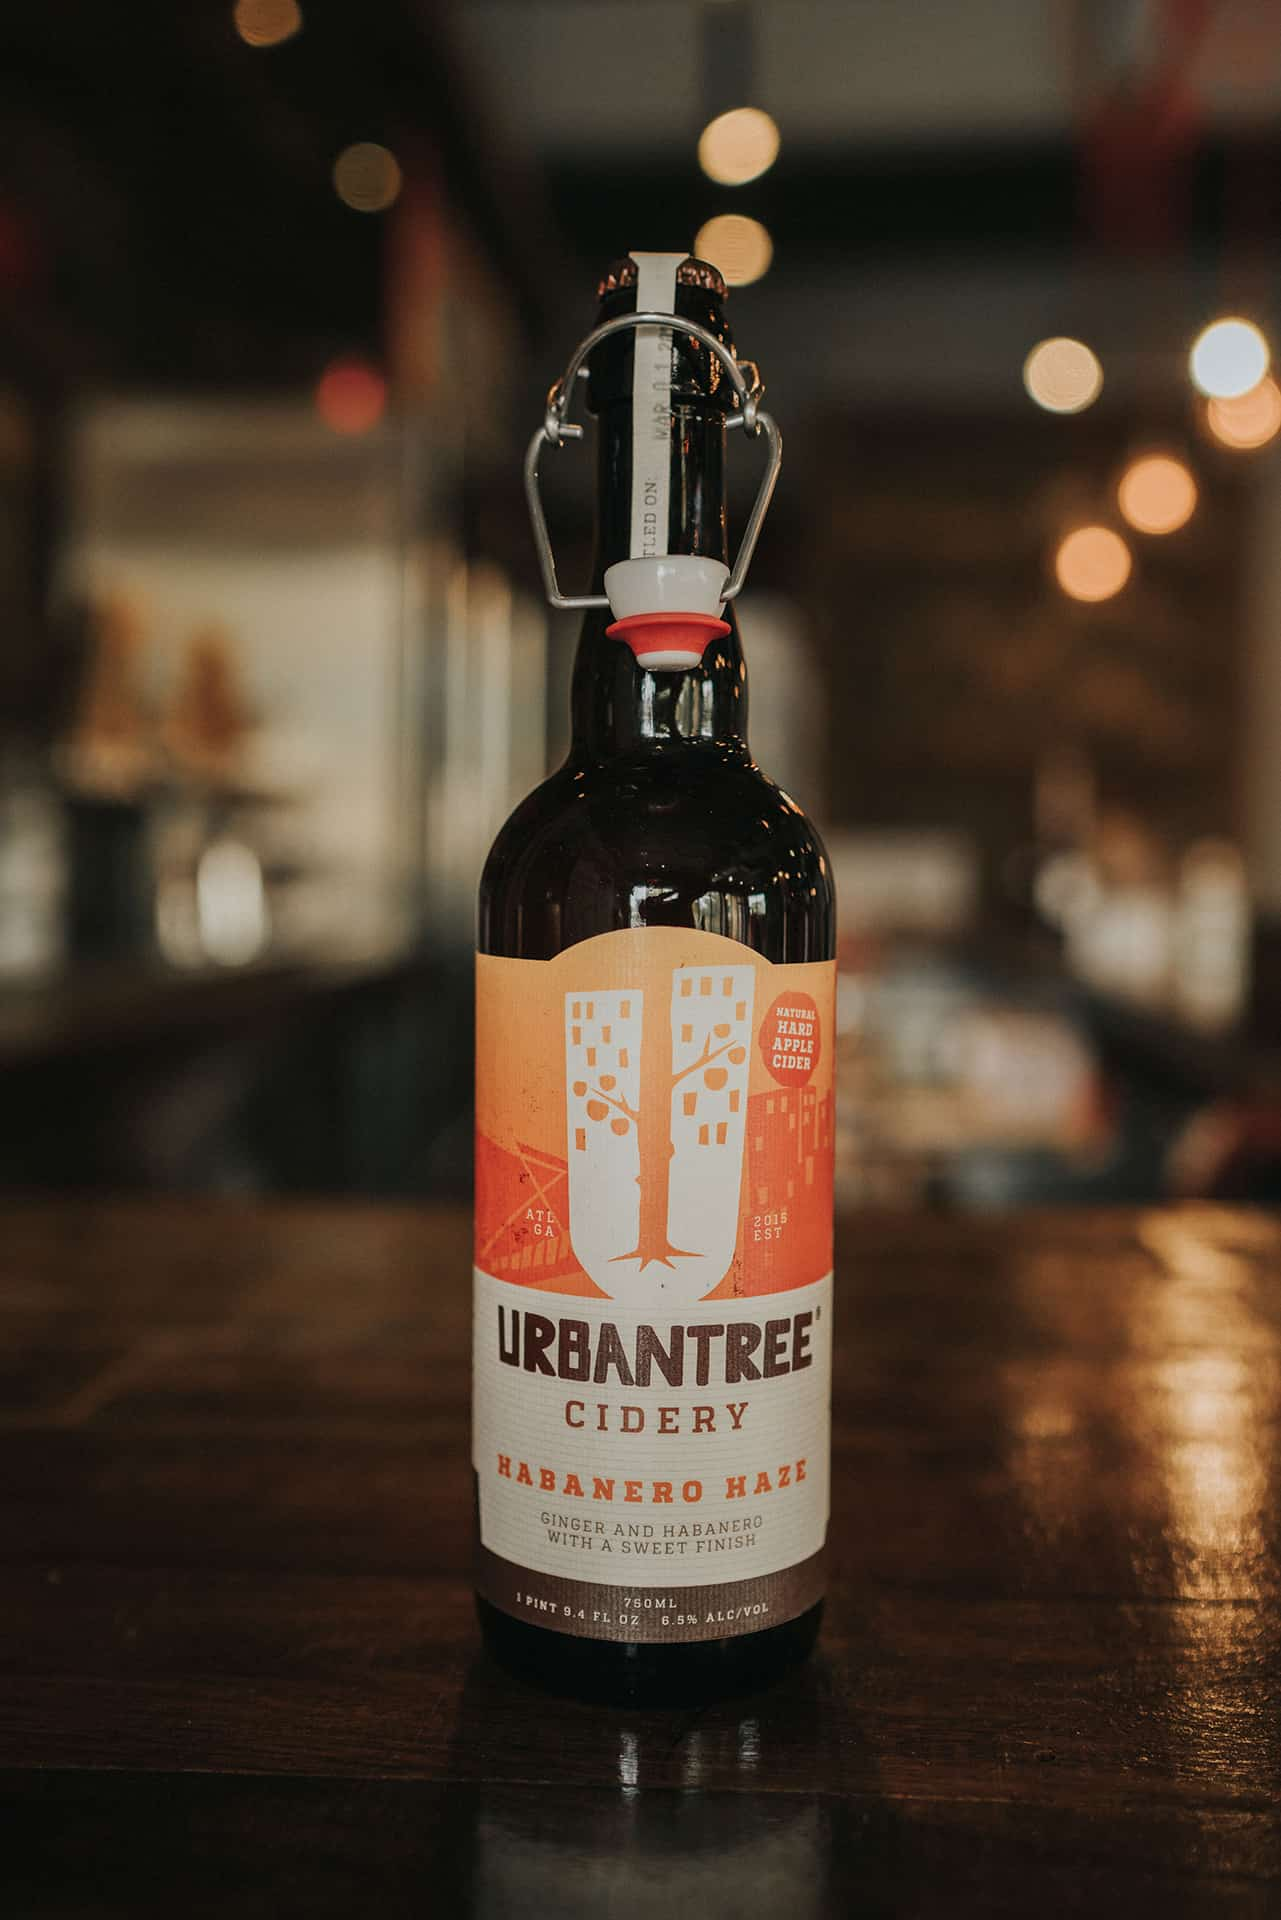 UrbanTree Cidery secondary packaging branding and design